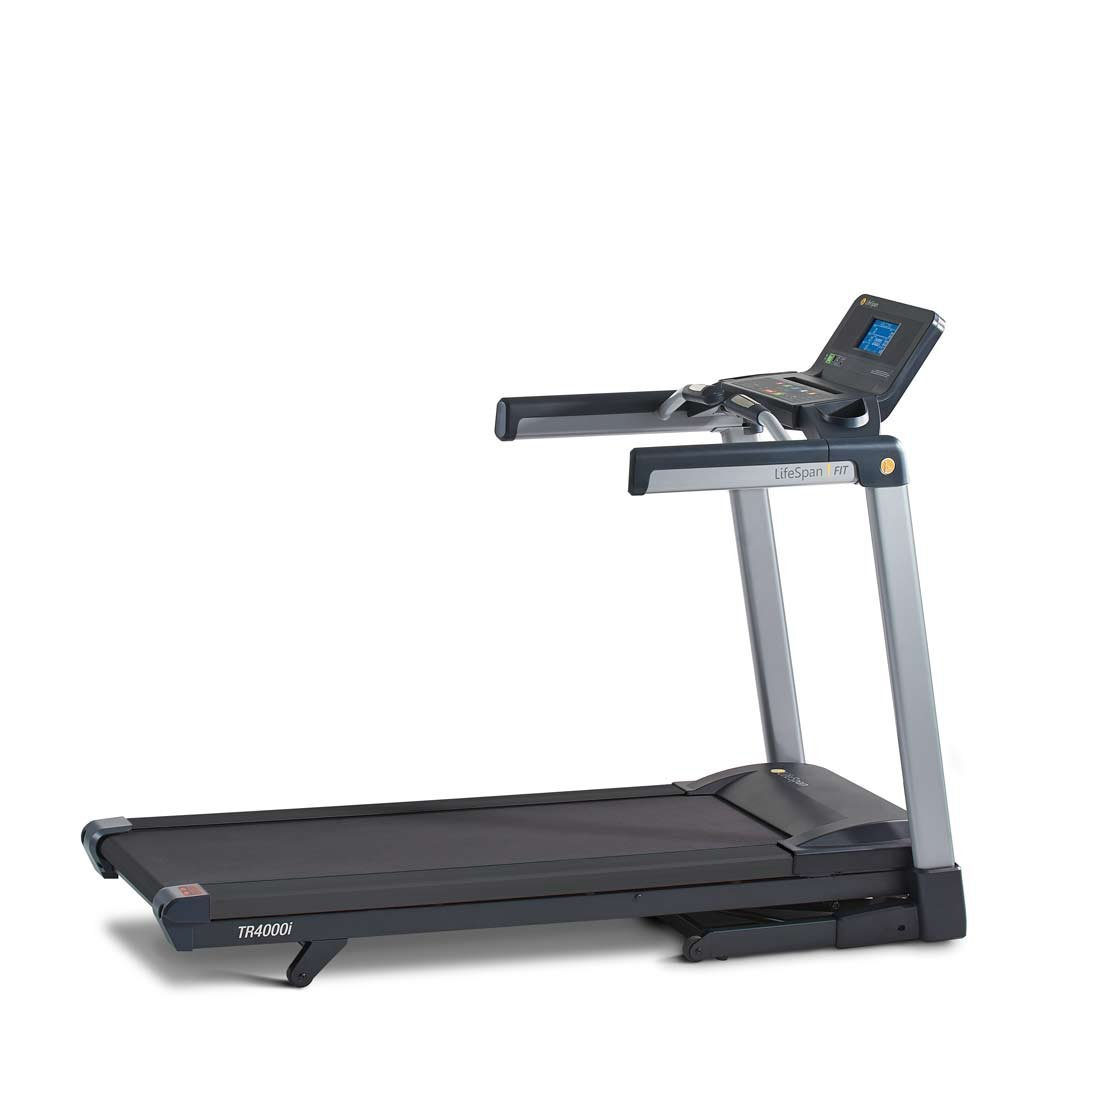 LifeSpan TR4000i Treadmill Review 2018